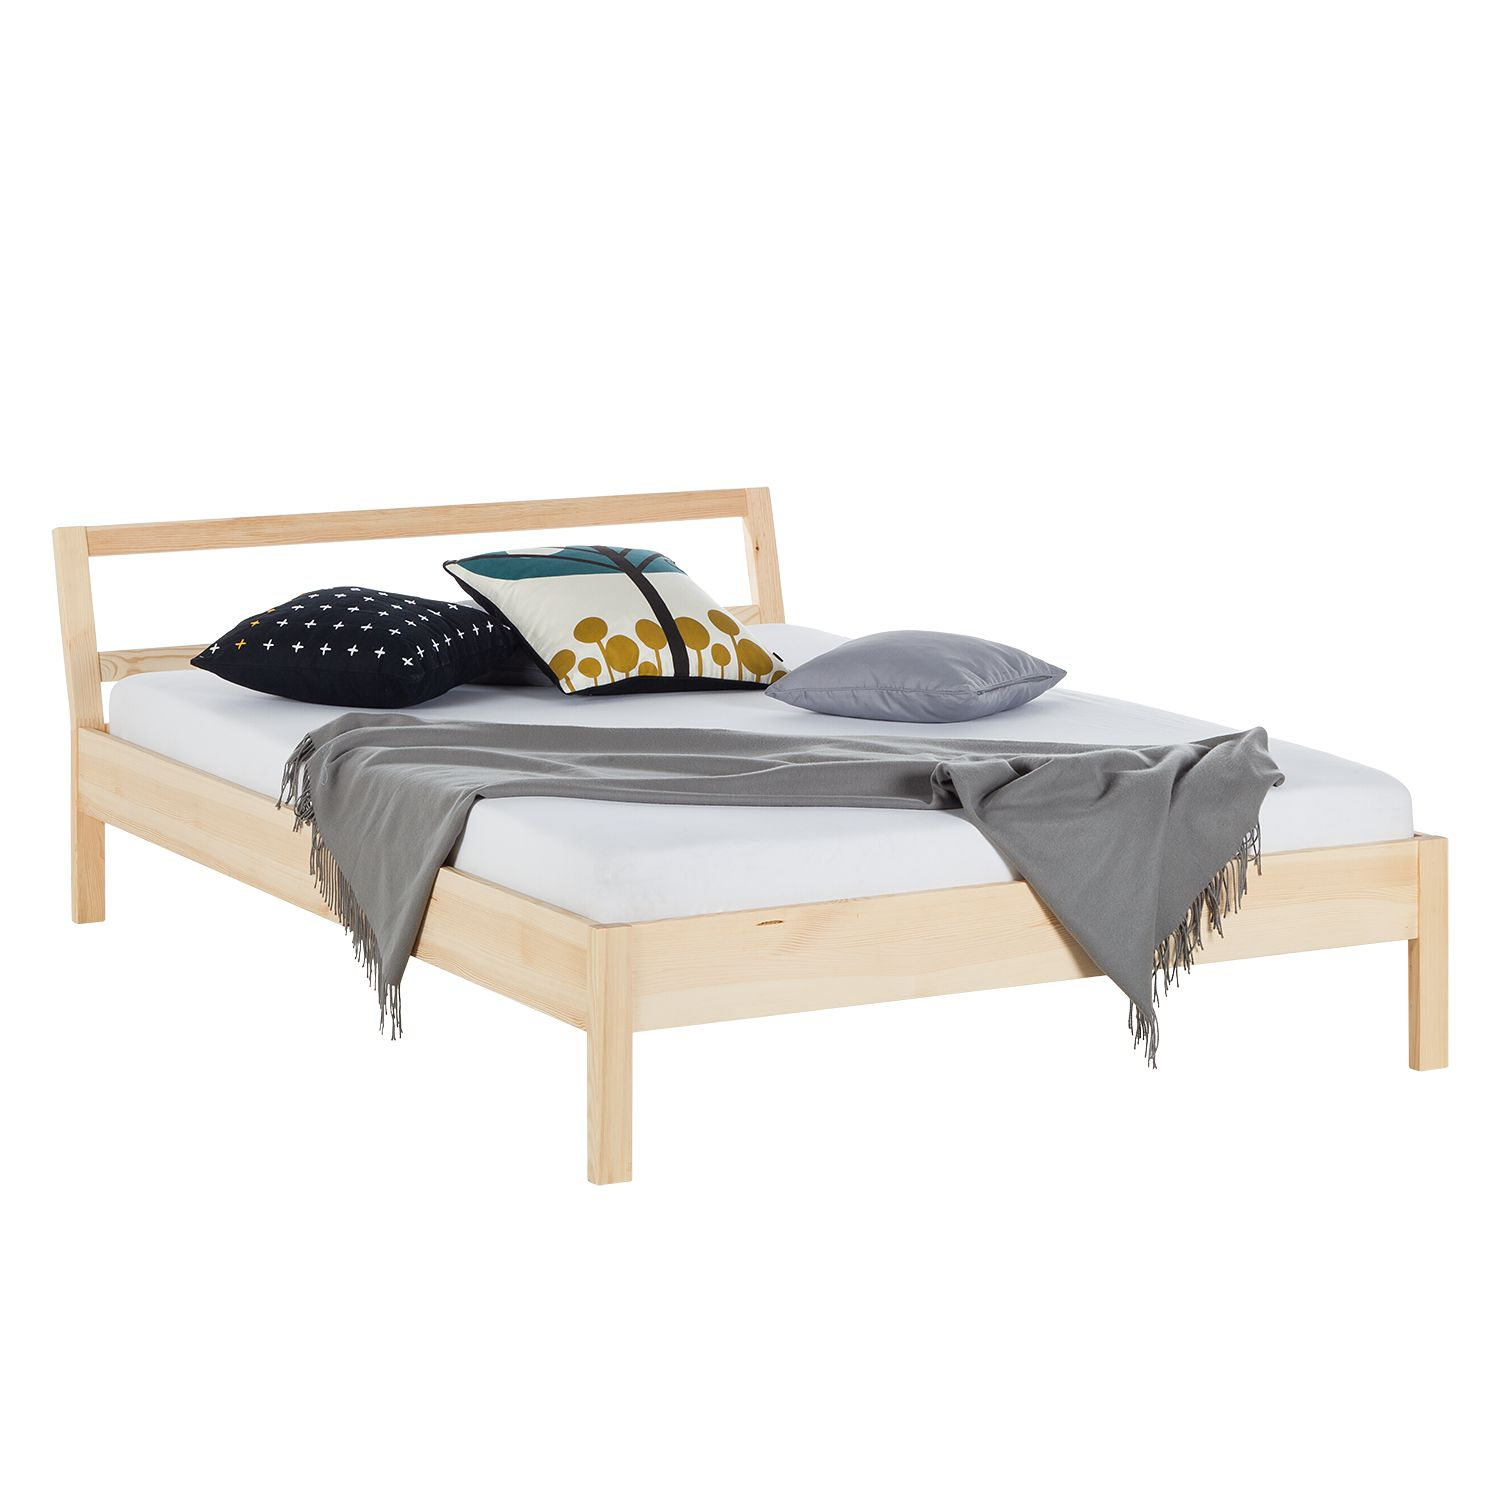 Massief houten bed KiYDOO wood - massief grenenhout, mooved